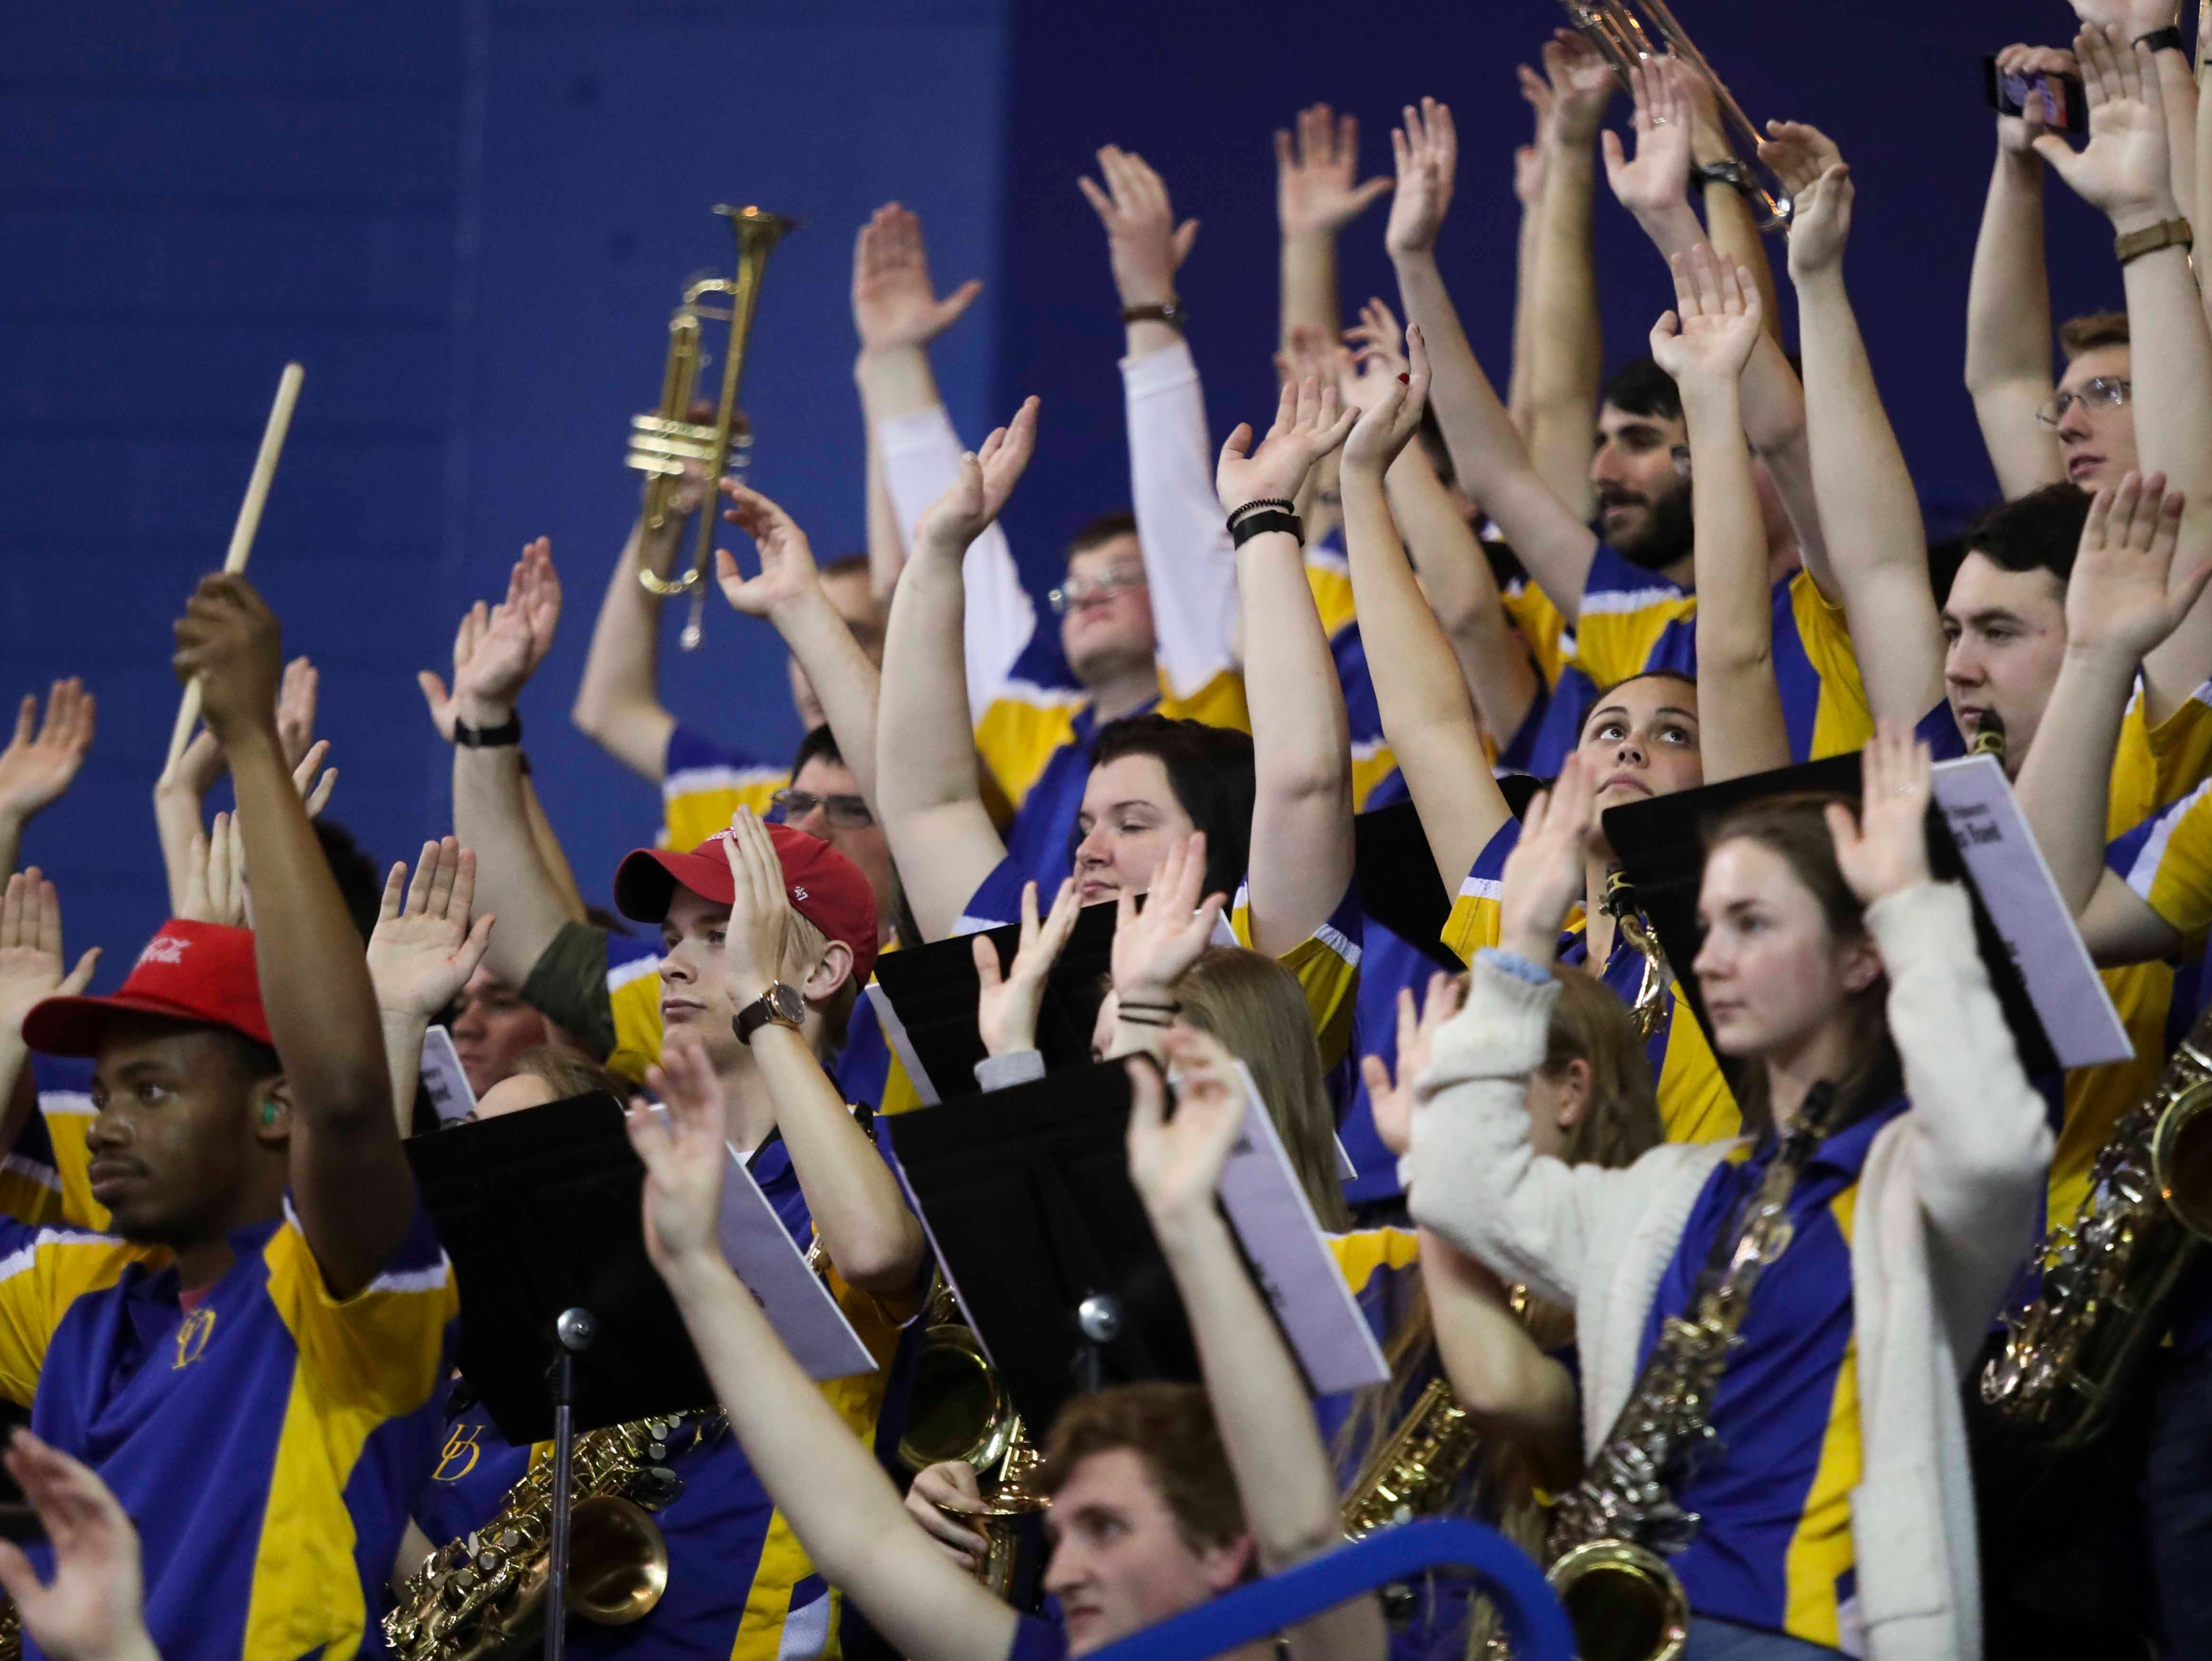 The UD pep band watches as a Blue Hen shoots free throws in the first half at the Bob Carpenter Center Thursday.